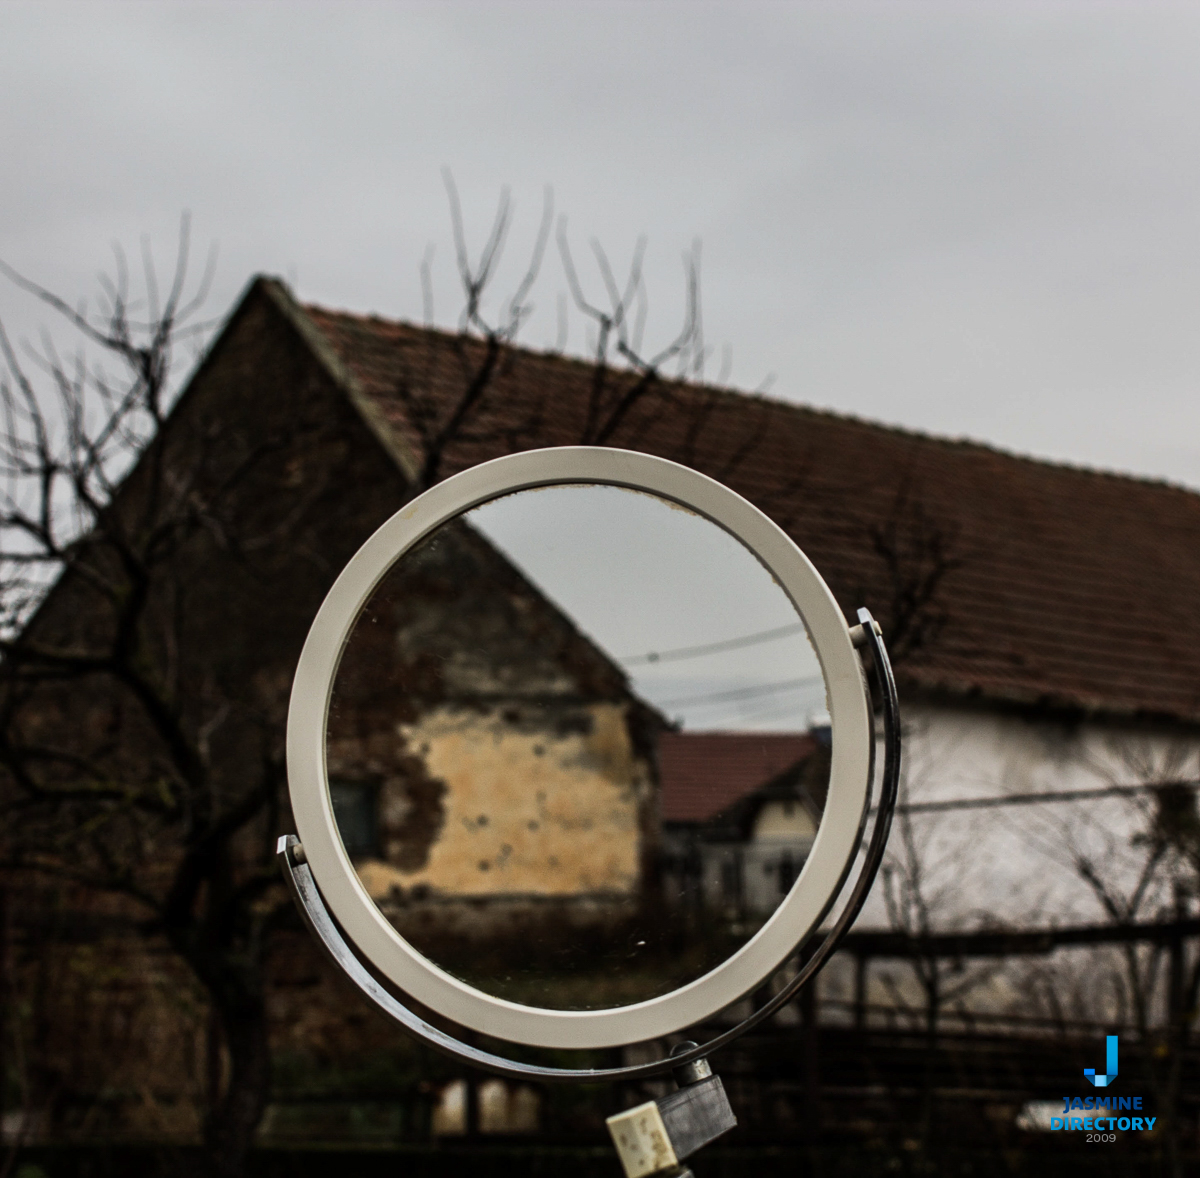 A mirror inside an image showing the same thing